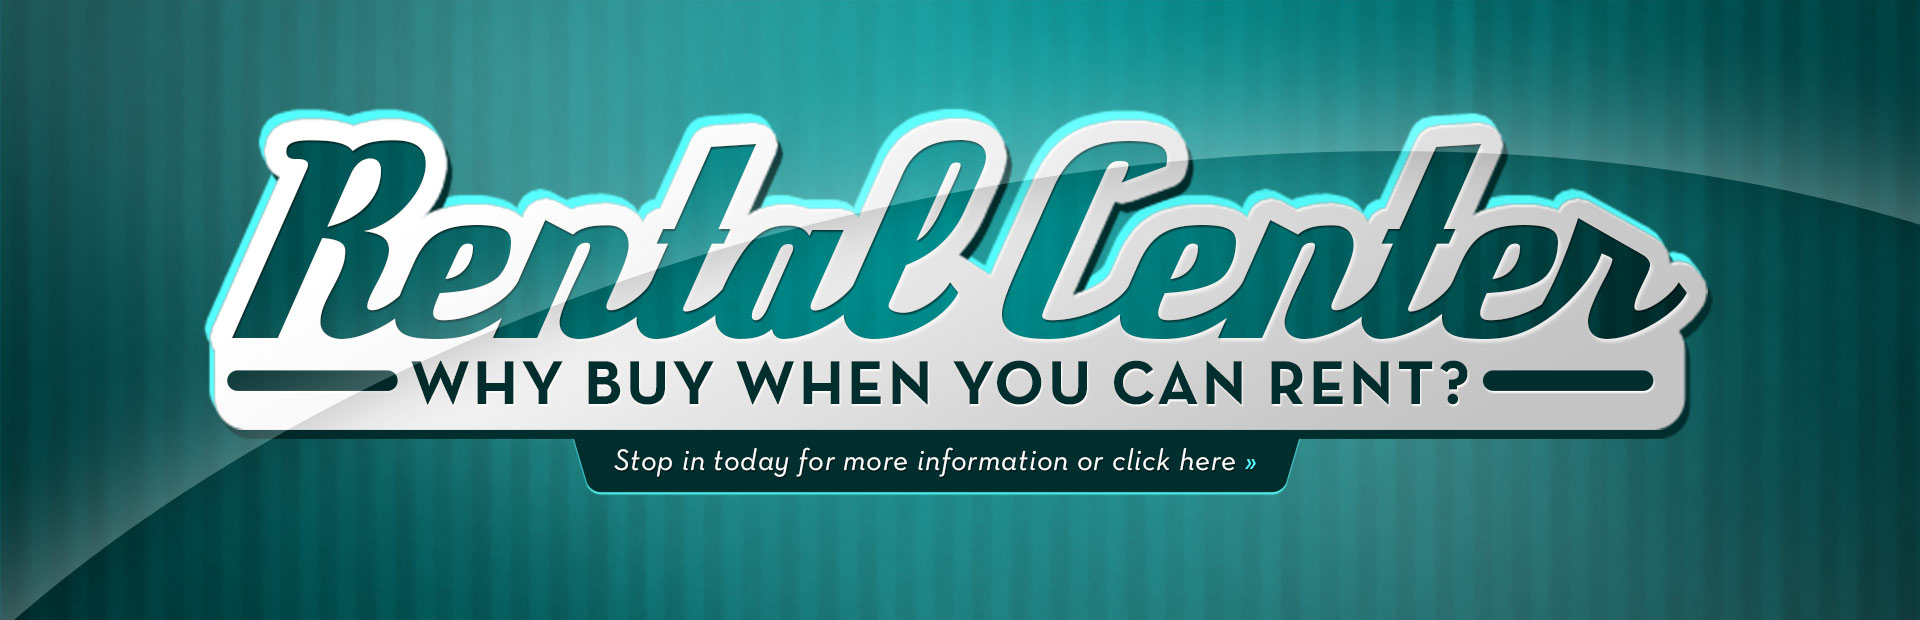 Why buy when you can rent? Stop in today for more information or click here.